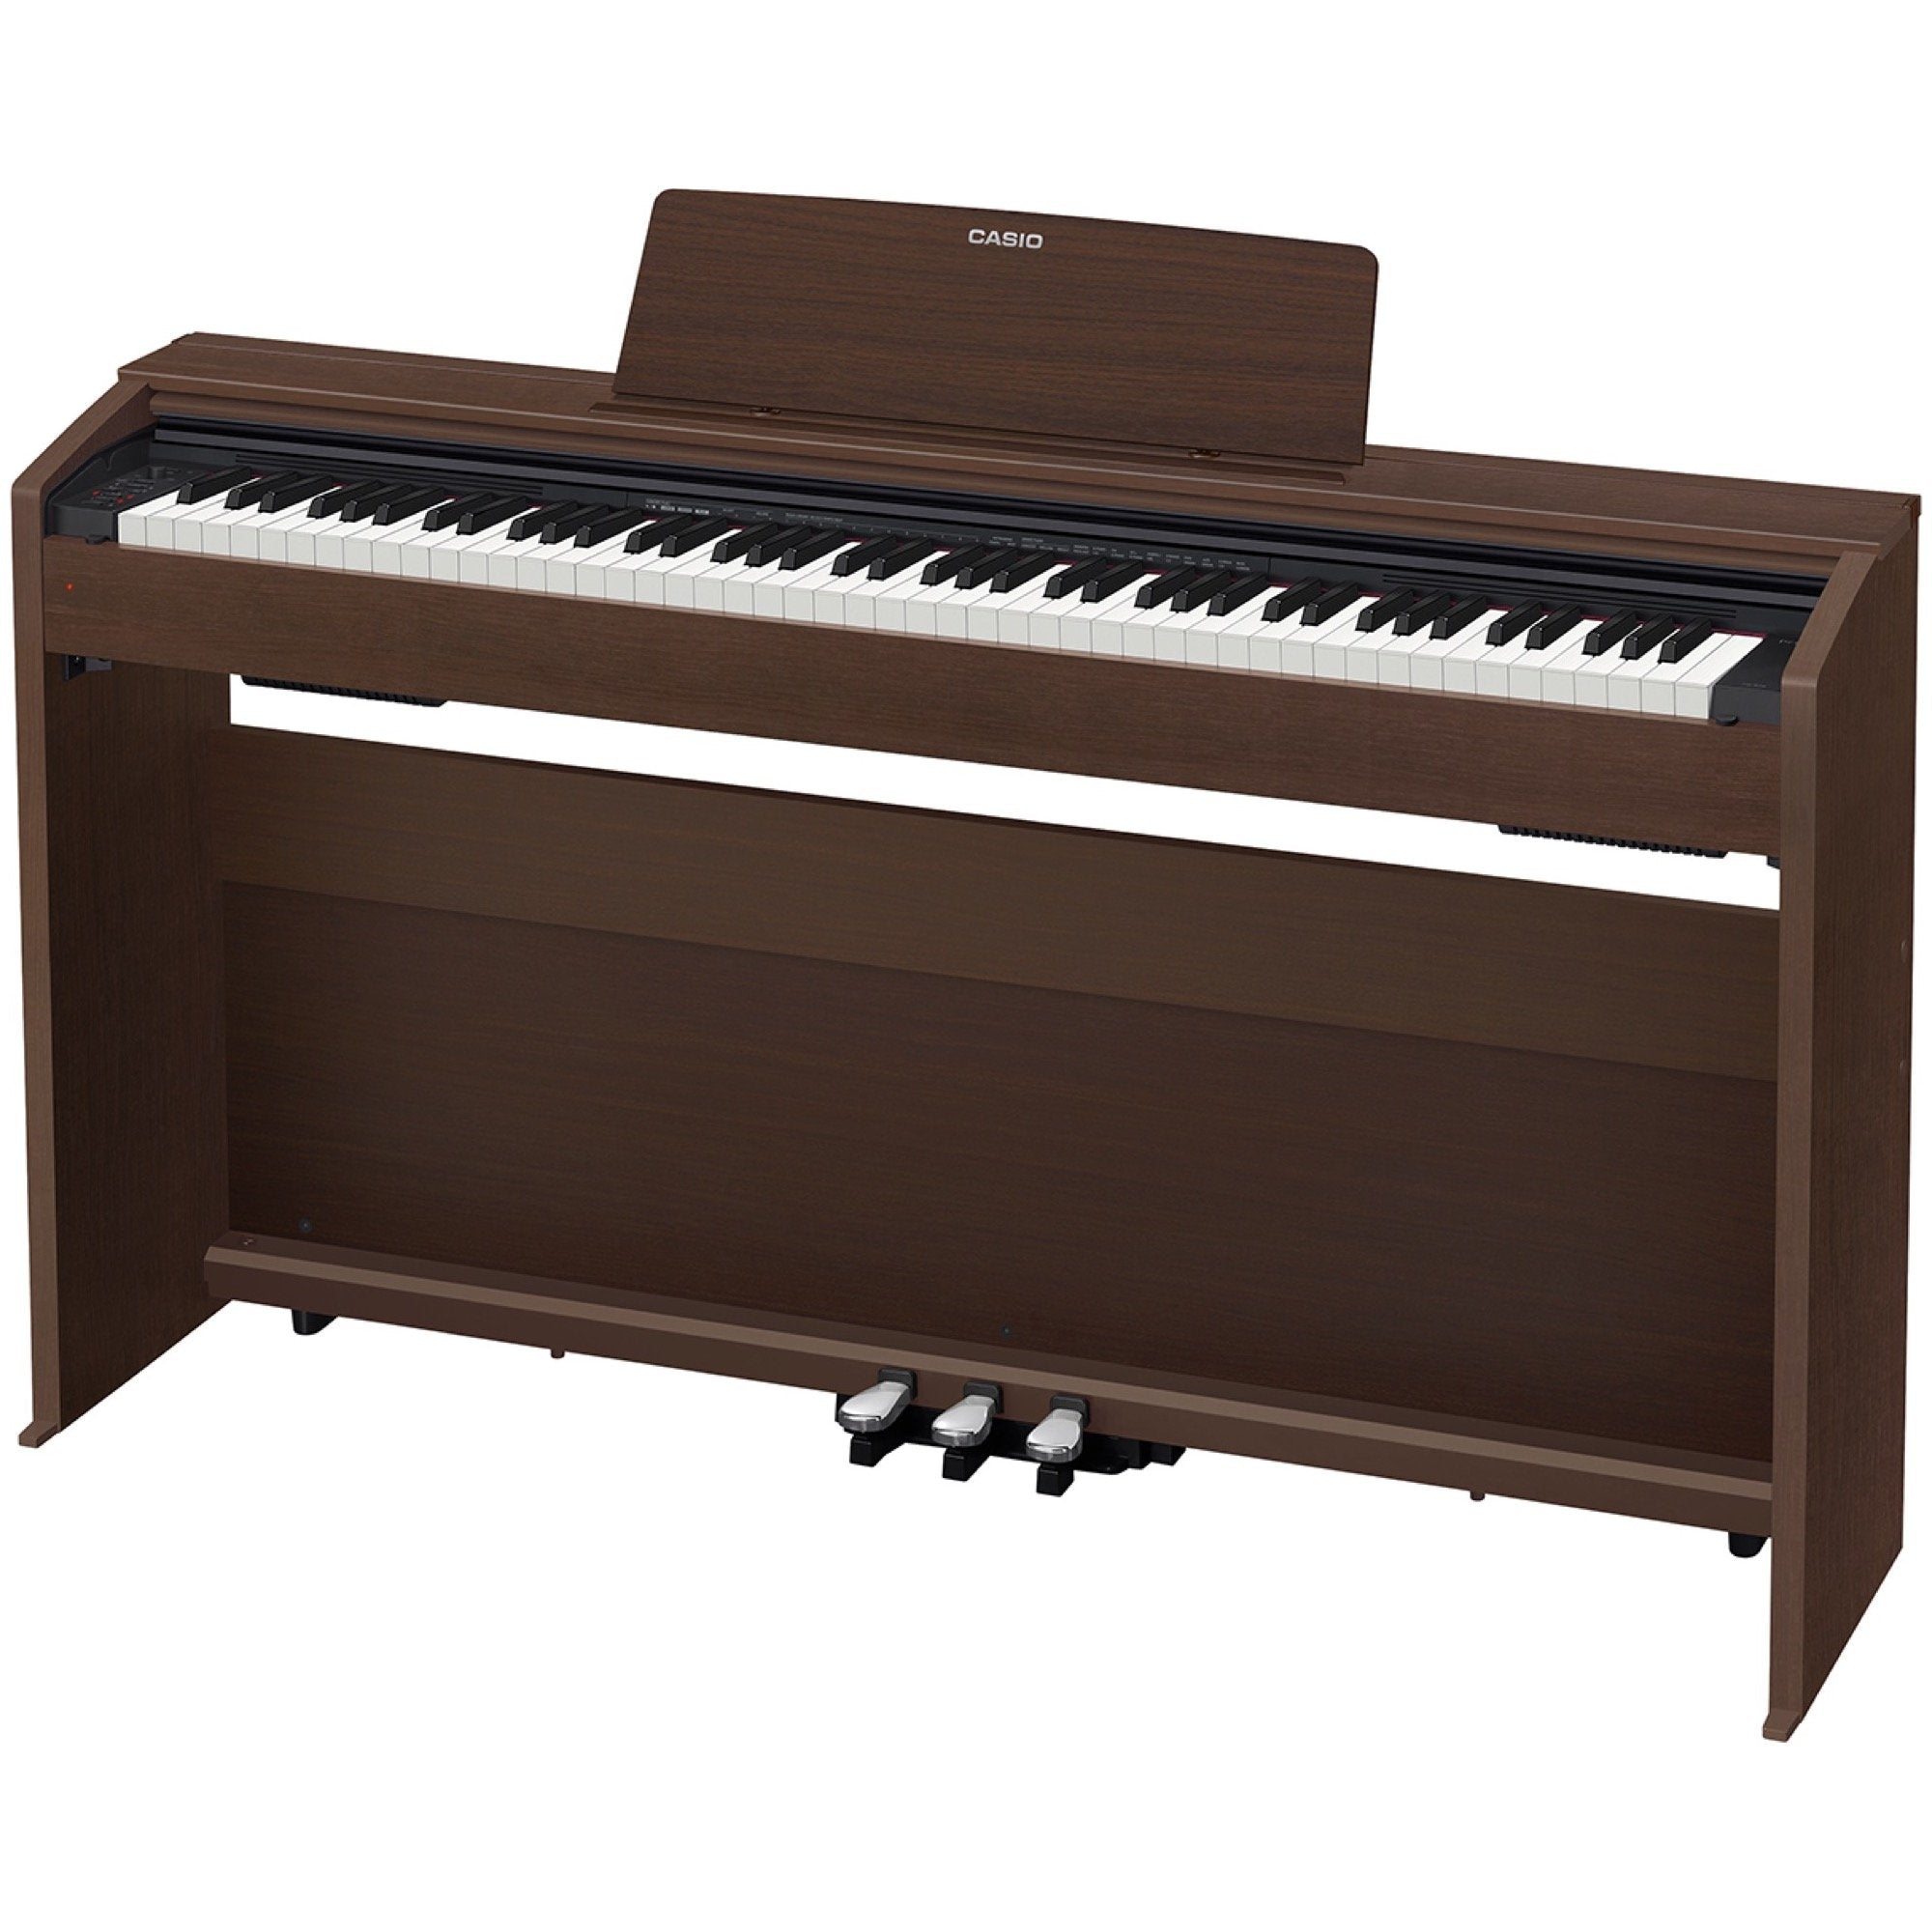 Casio PX-870 Privia Digital Piano, Brown